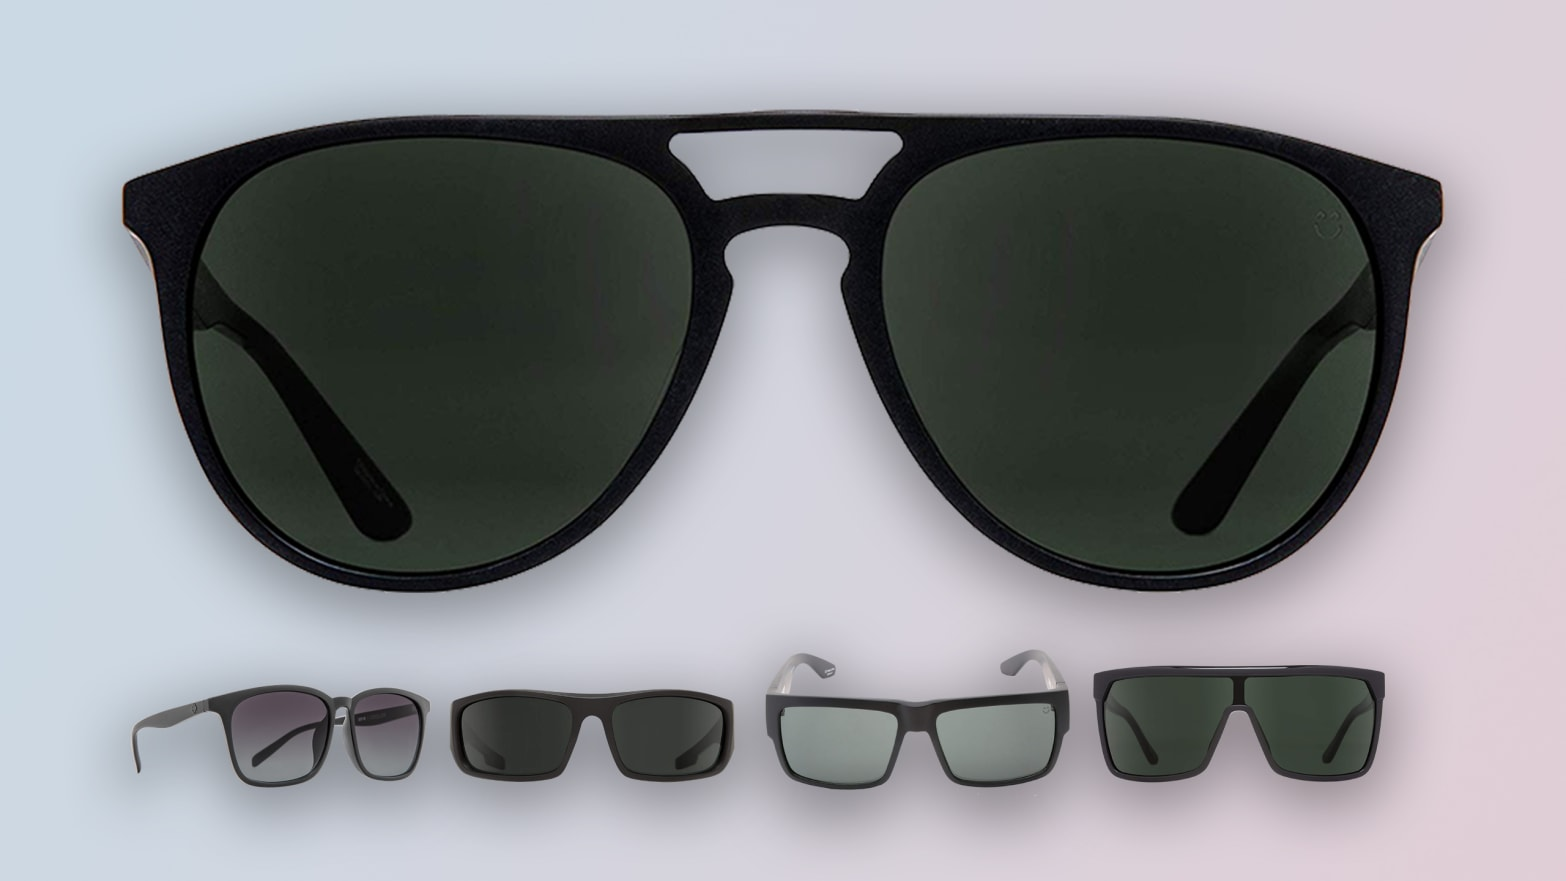 3227e983fa SPY HD+ Sunglasses Collection Is Affordable High End